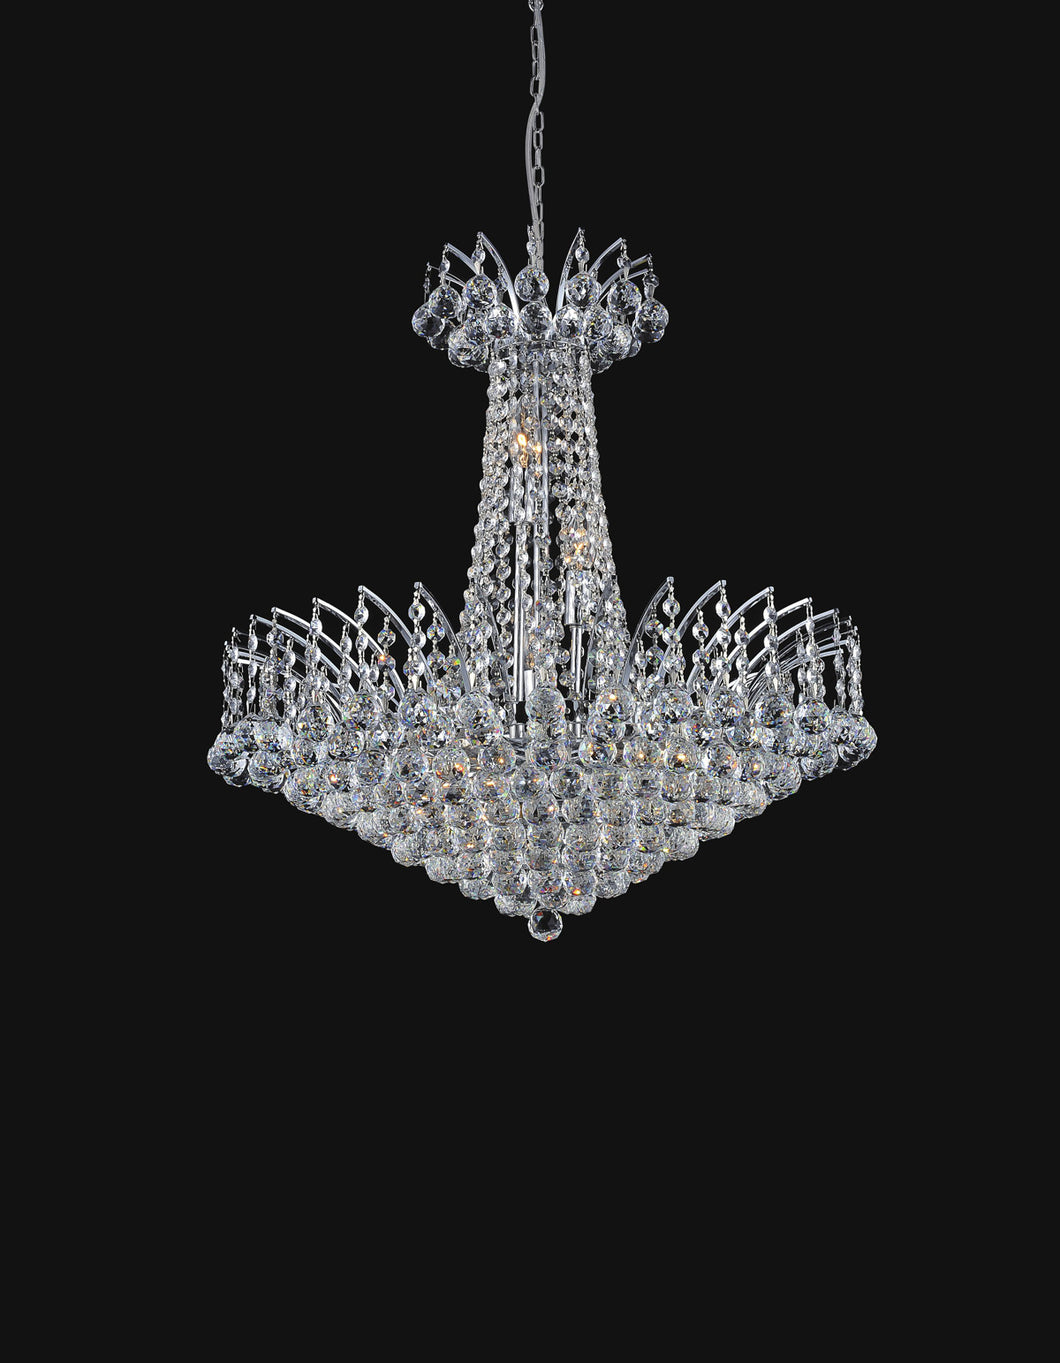 22 Light Down Chandelier with Chrome finish